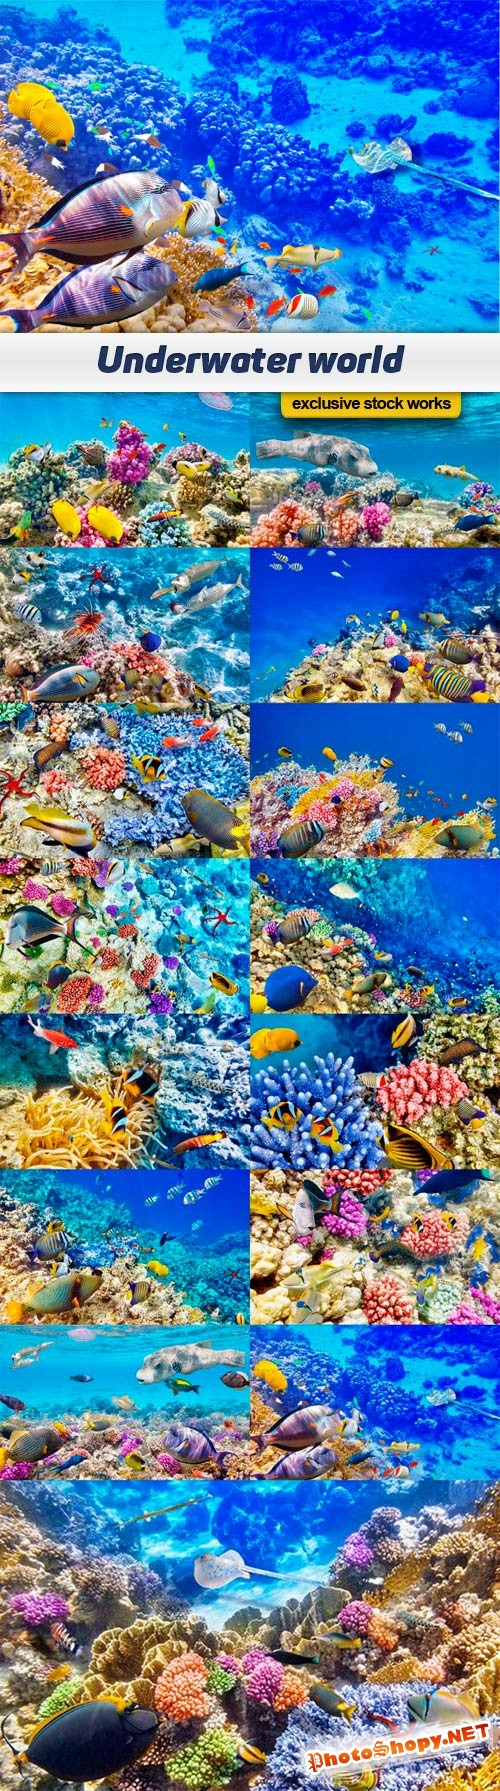 Underwater world - 15 UHQ JPEG